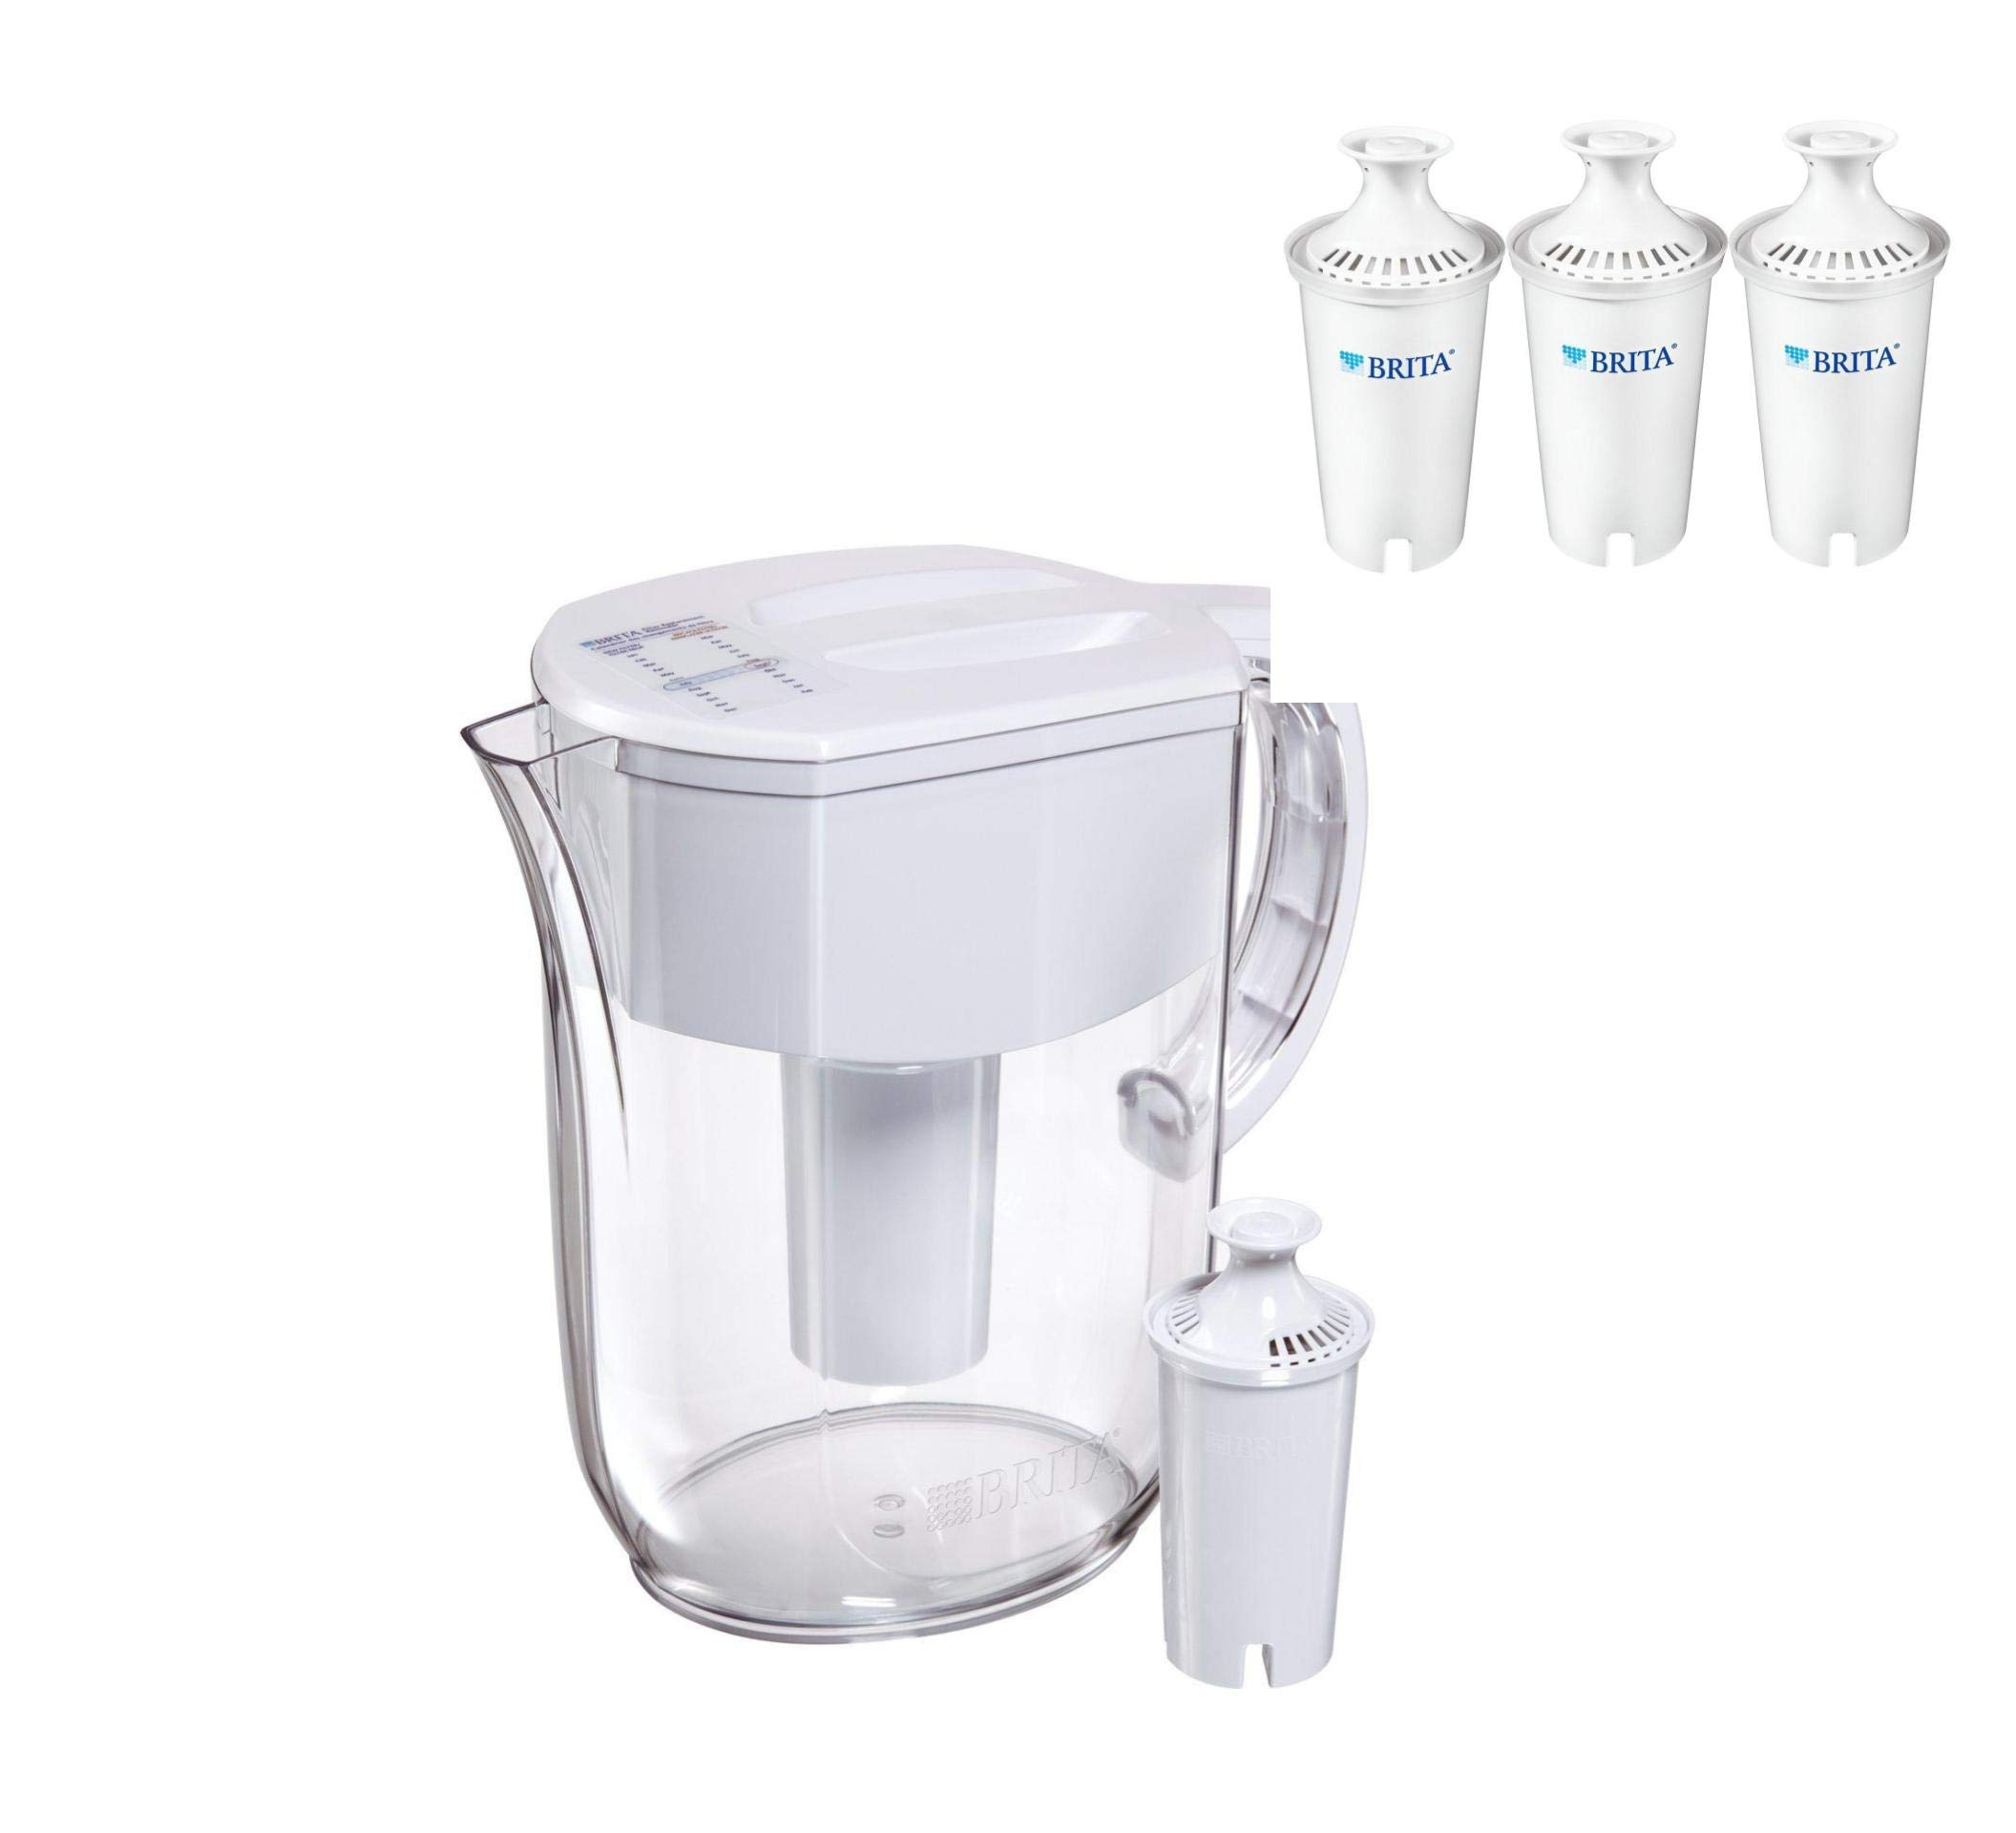 Brita Large 10 Cup Everyday Water Pitcher (Pitcher with 4 Filters)